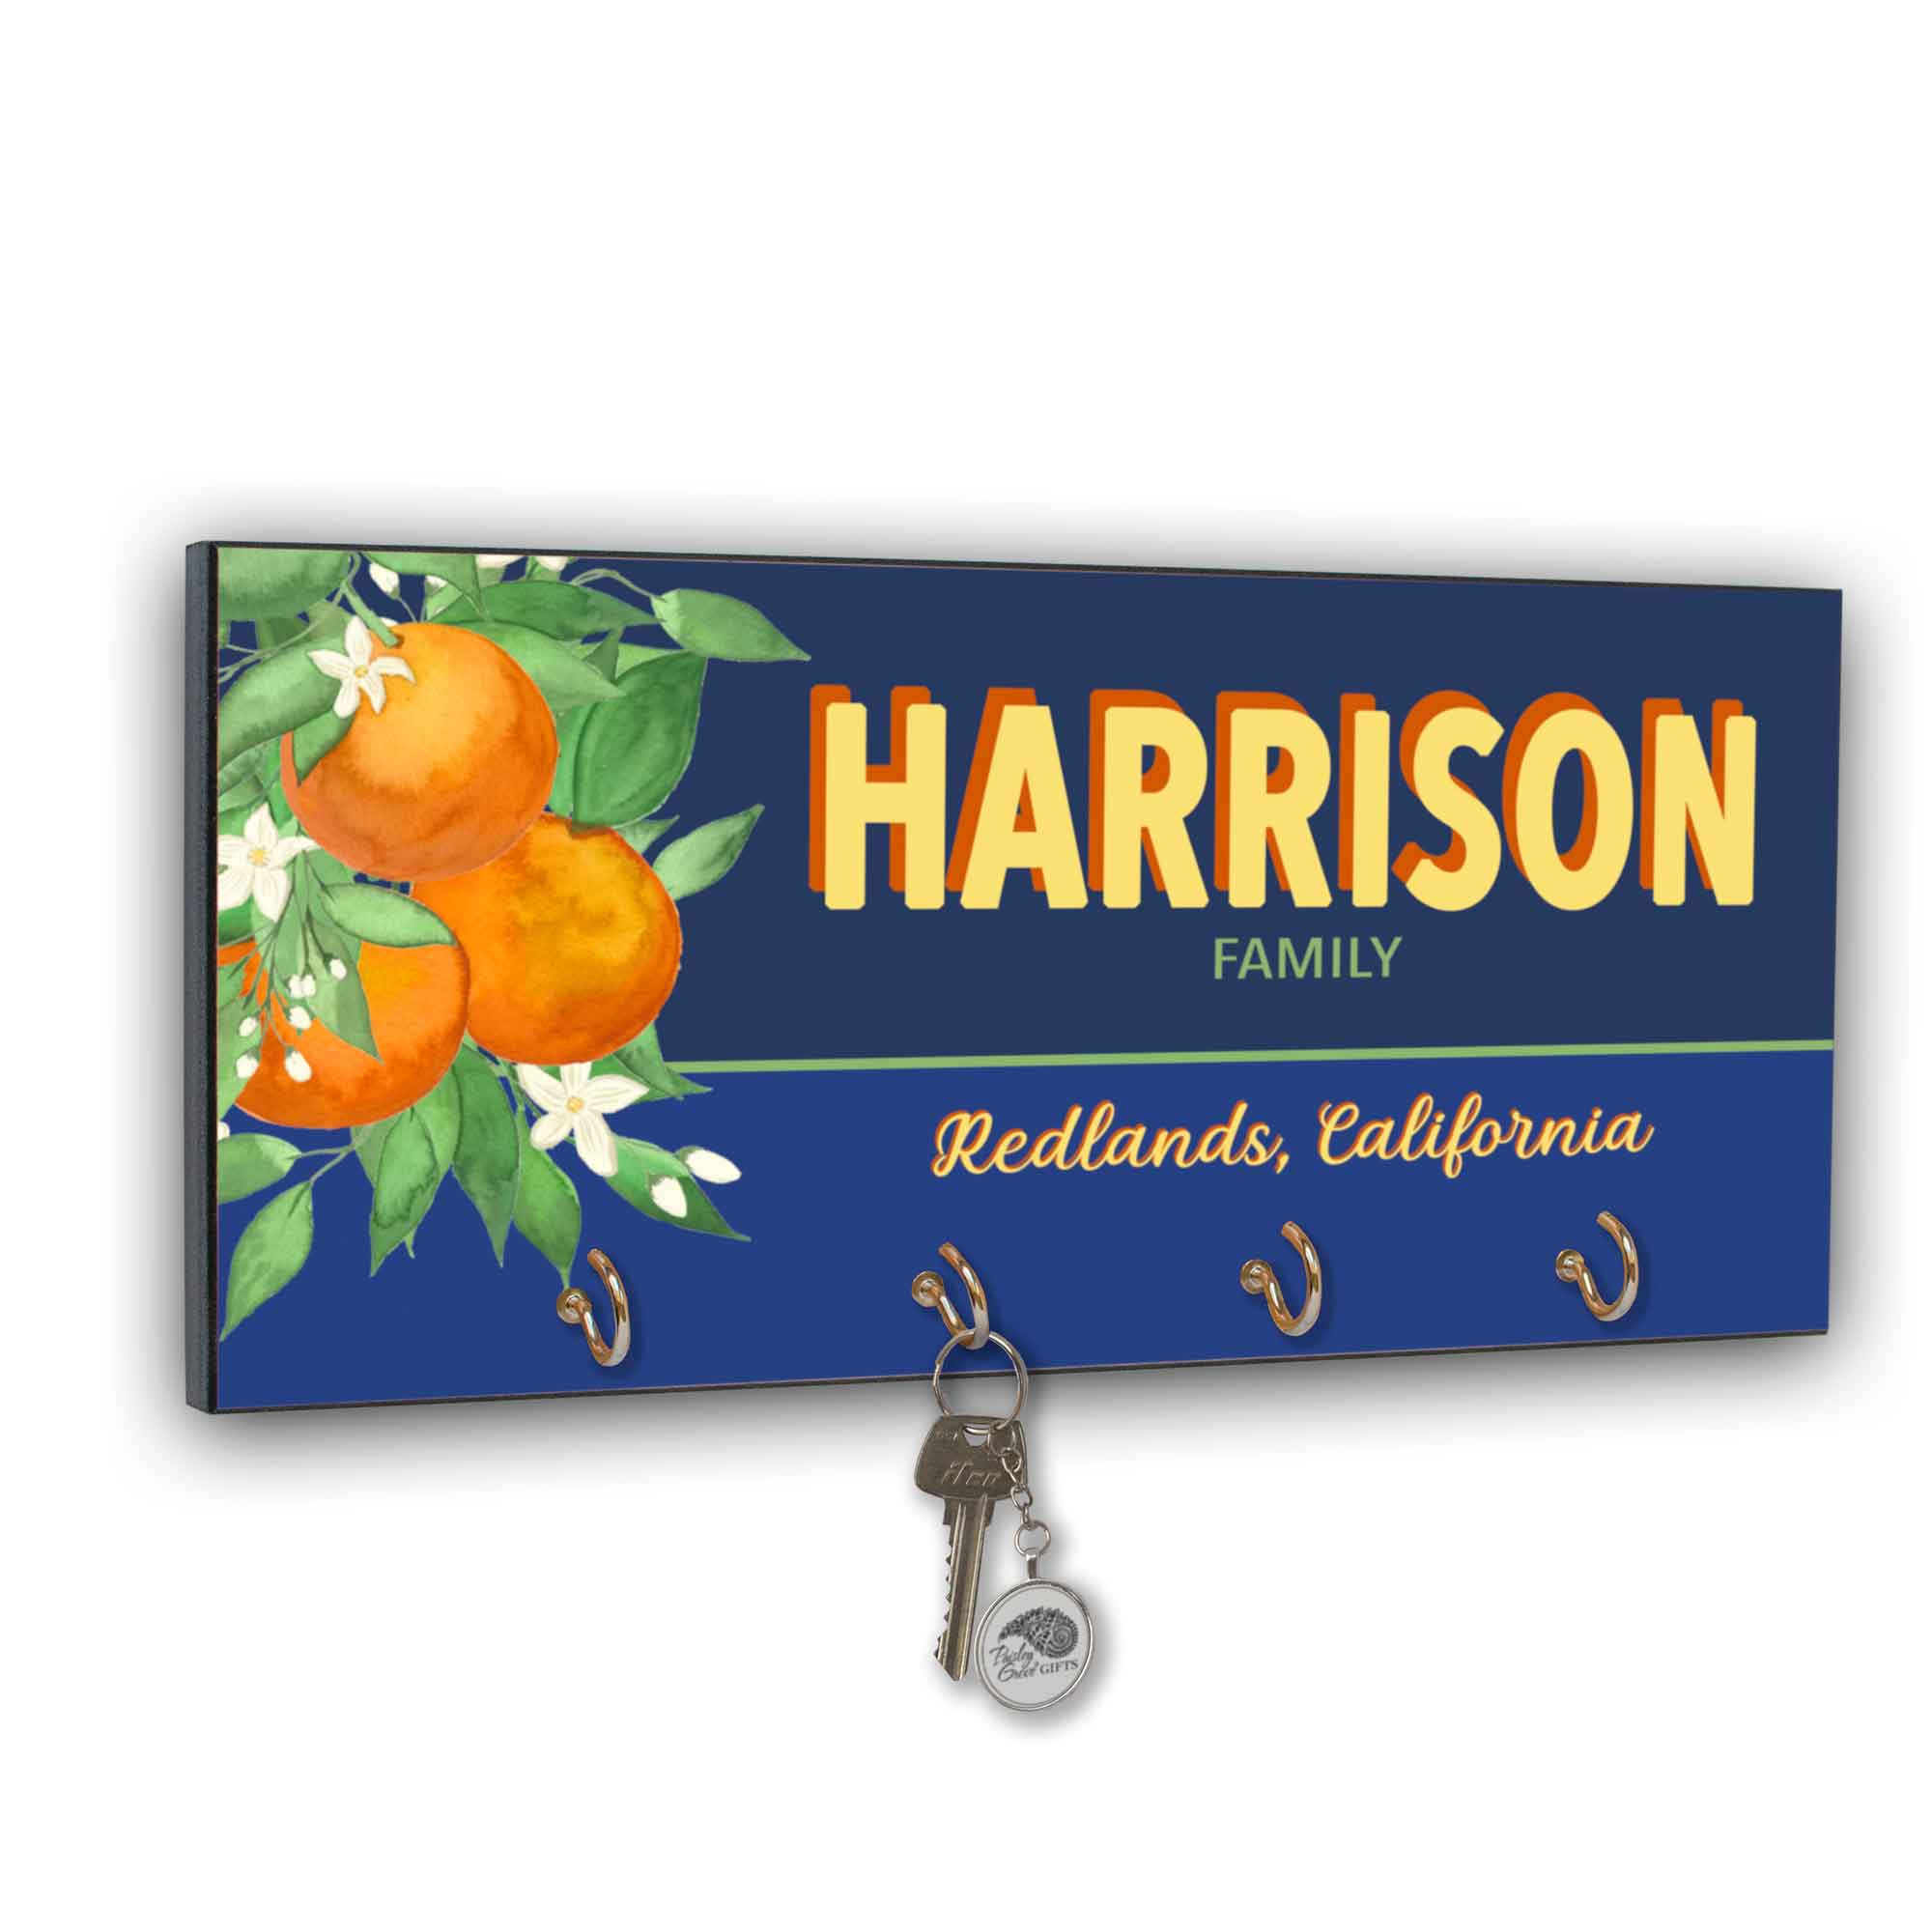 CopyrightPaisleyGroveGIFTS S311d Redlands Fruit Crate Label key holder for wall Redlands Hometown Decor